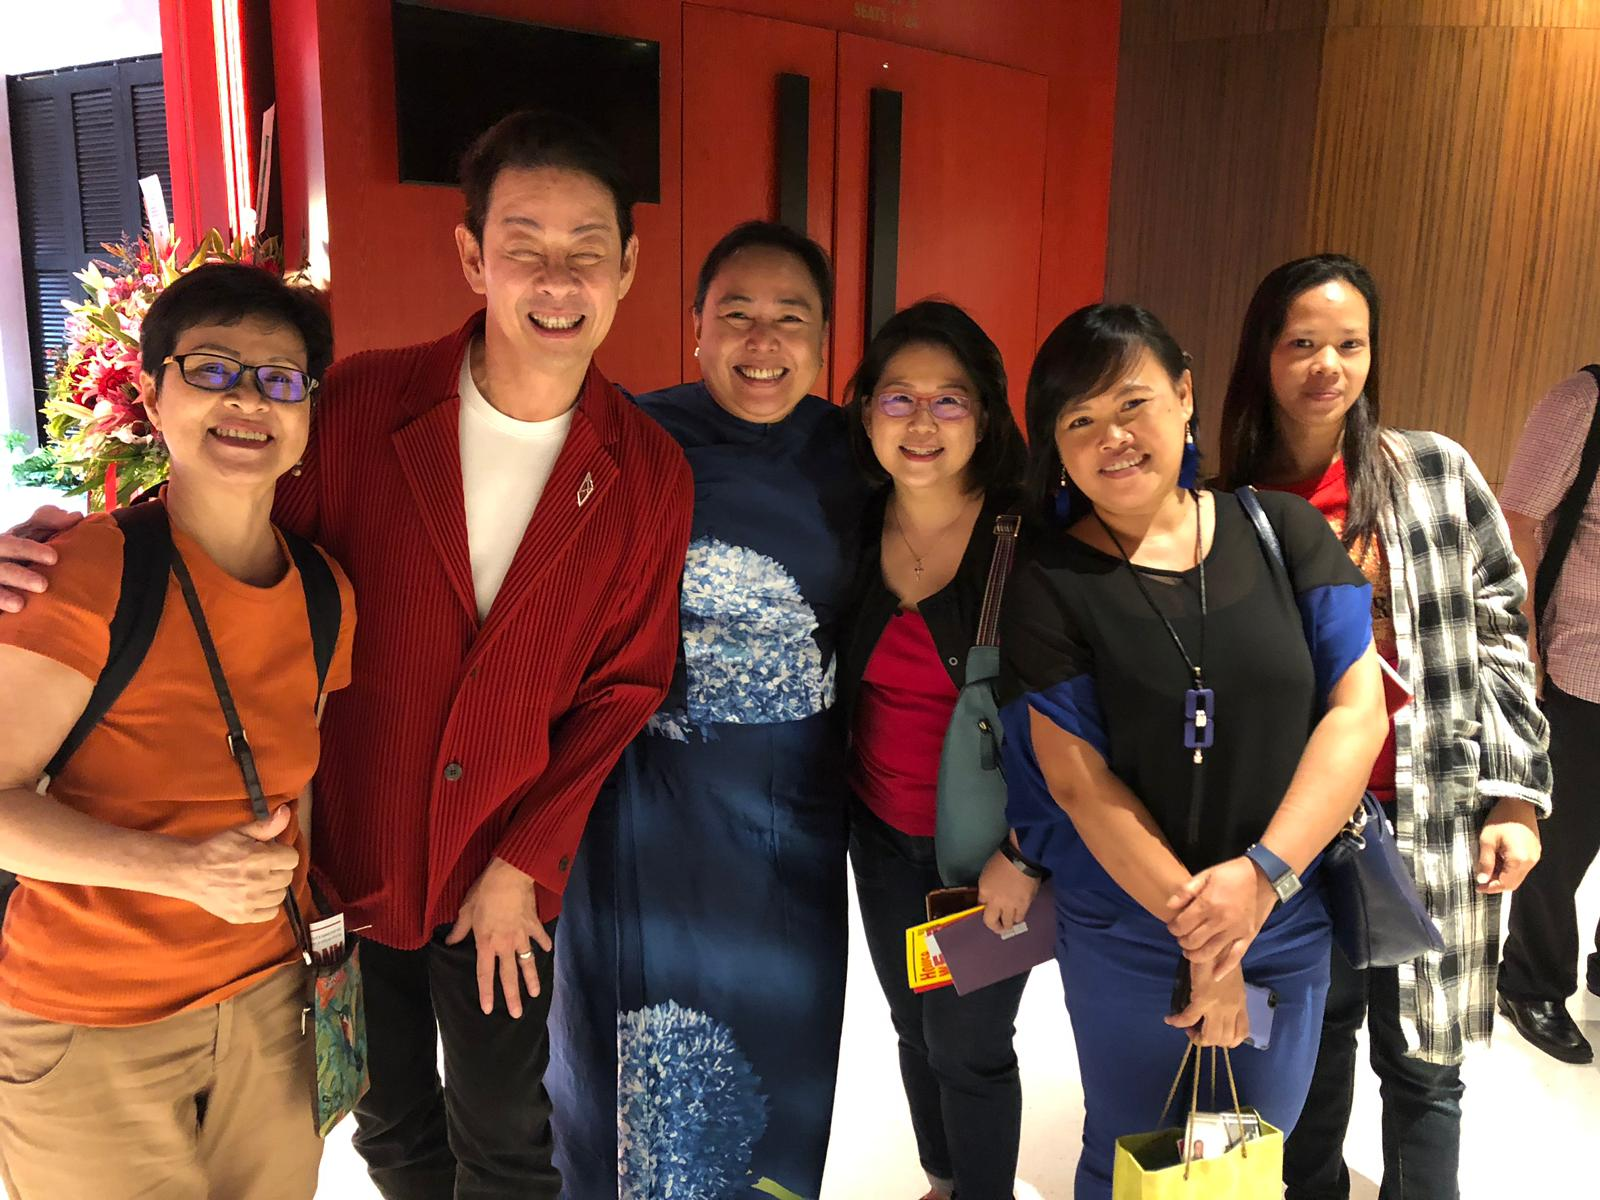 All smiles with the Founding Artistic Director of Wild Rice, Ivan Heng.